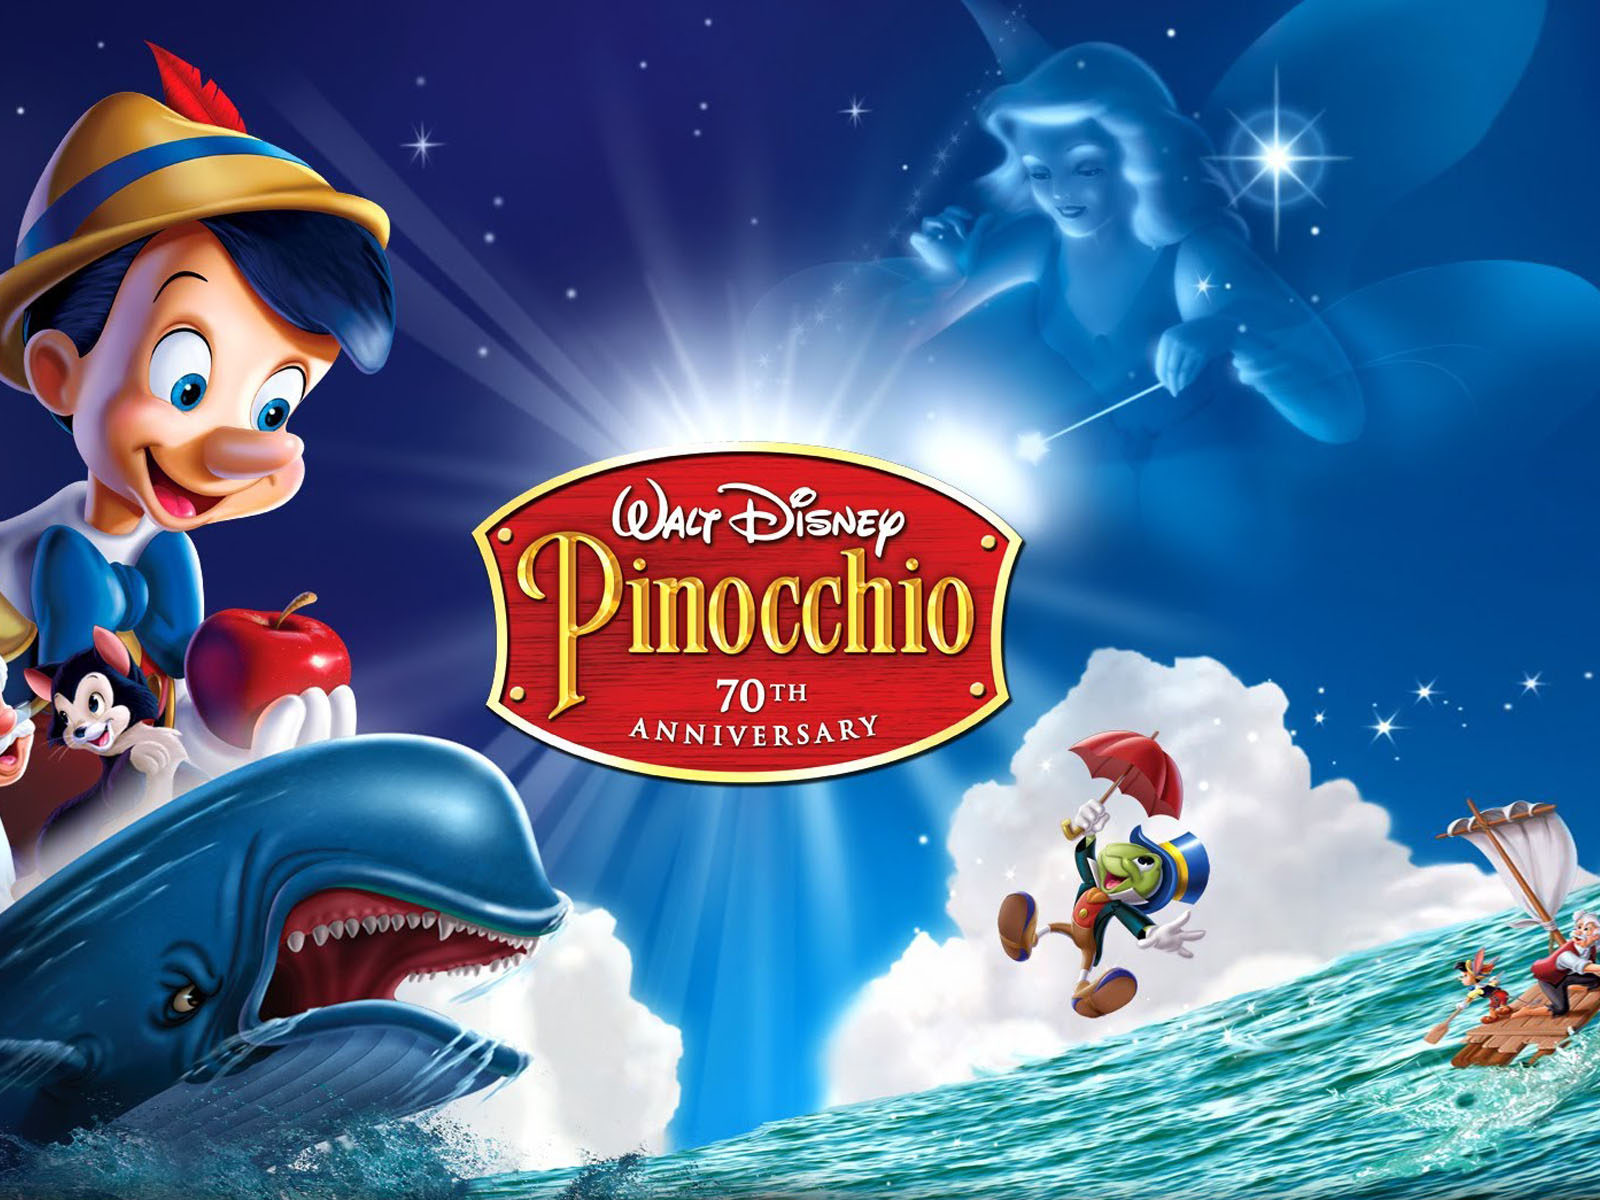 Cars 2 Cartoon Wallpaper Walt Disney Pinocchio First Time Ever On 2 Disc Platinum